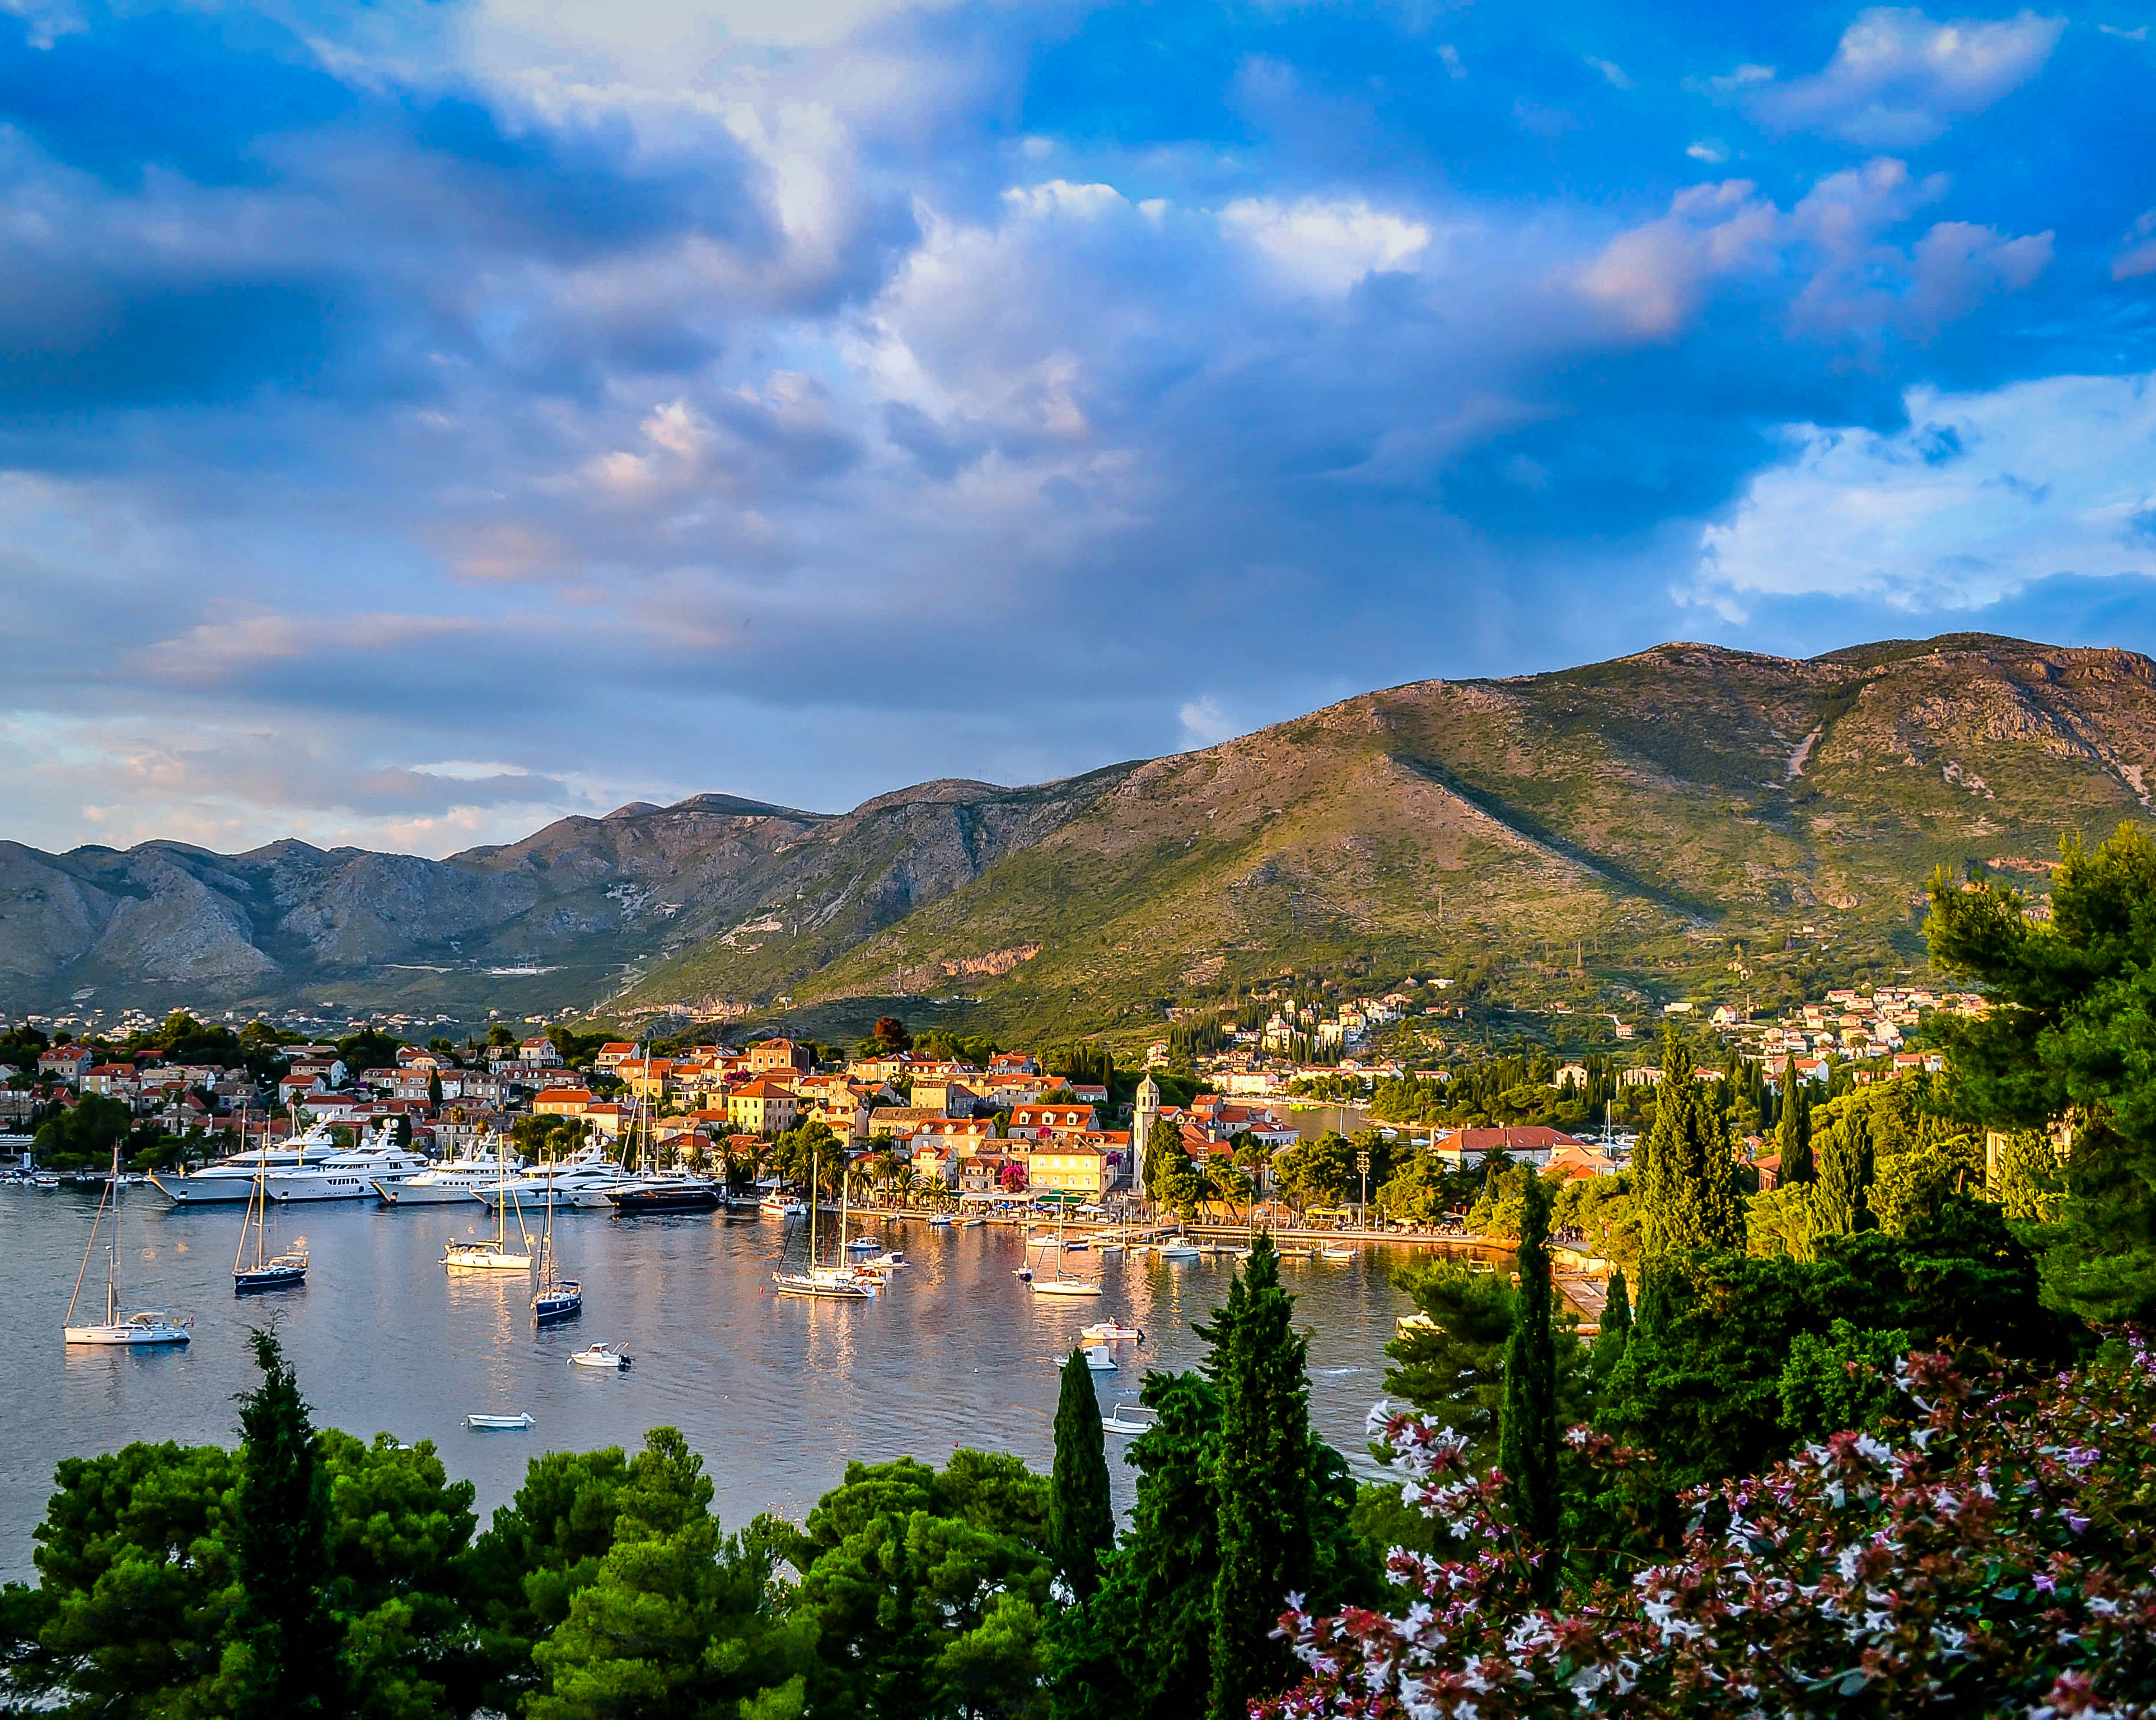 Cavtat, Croatia - Monterrasol private tours to Cavtat, Croatia. Travel agency offers custom private car tours to see Cavtat in Croatia. Order custom private tour to Cavtat with departure date on request.